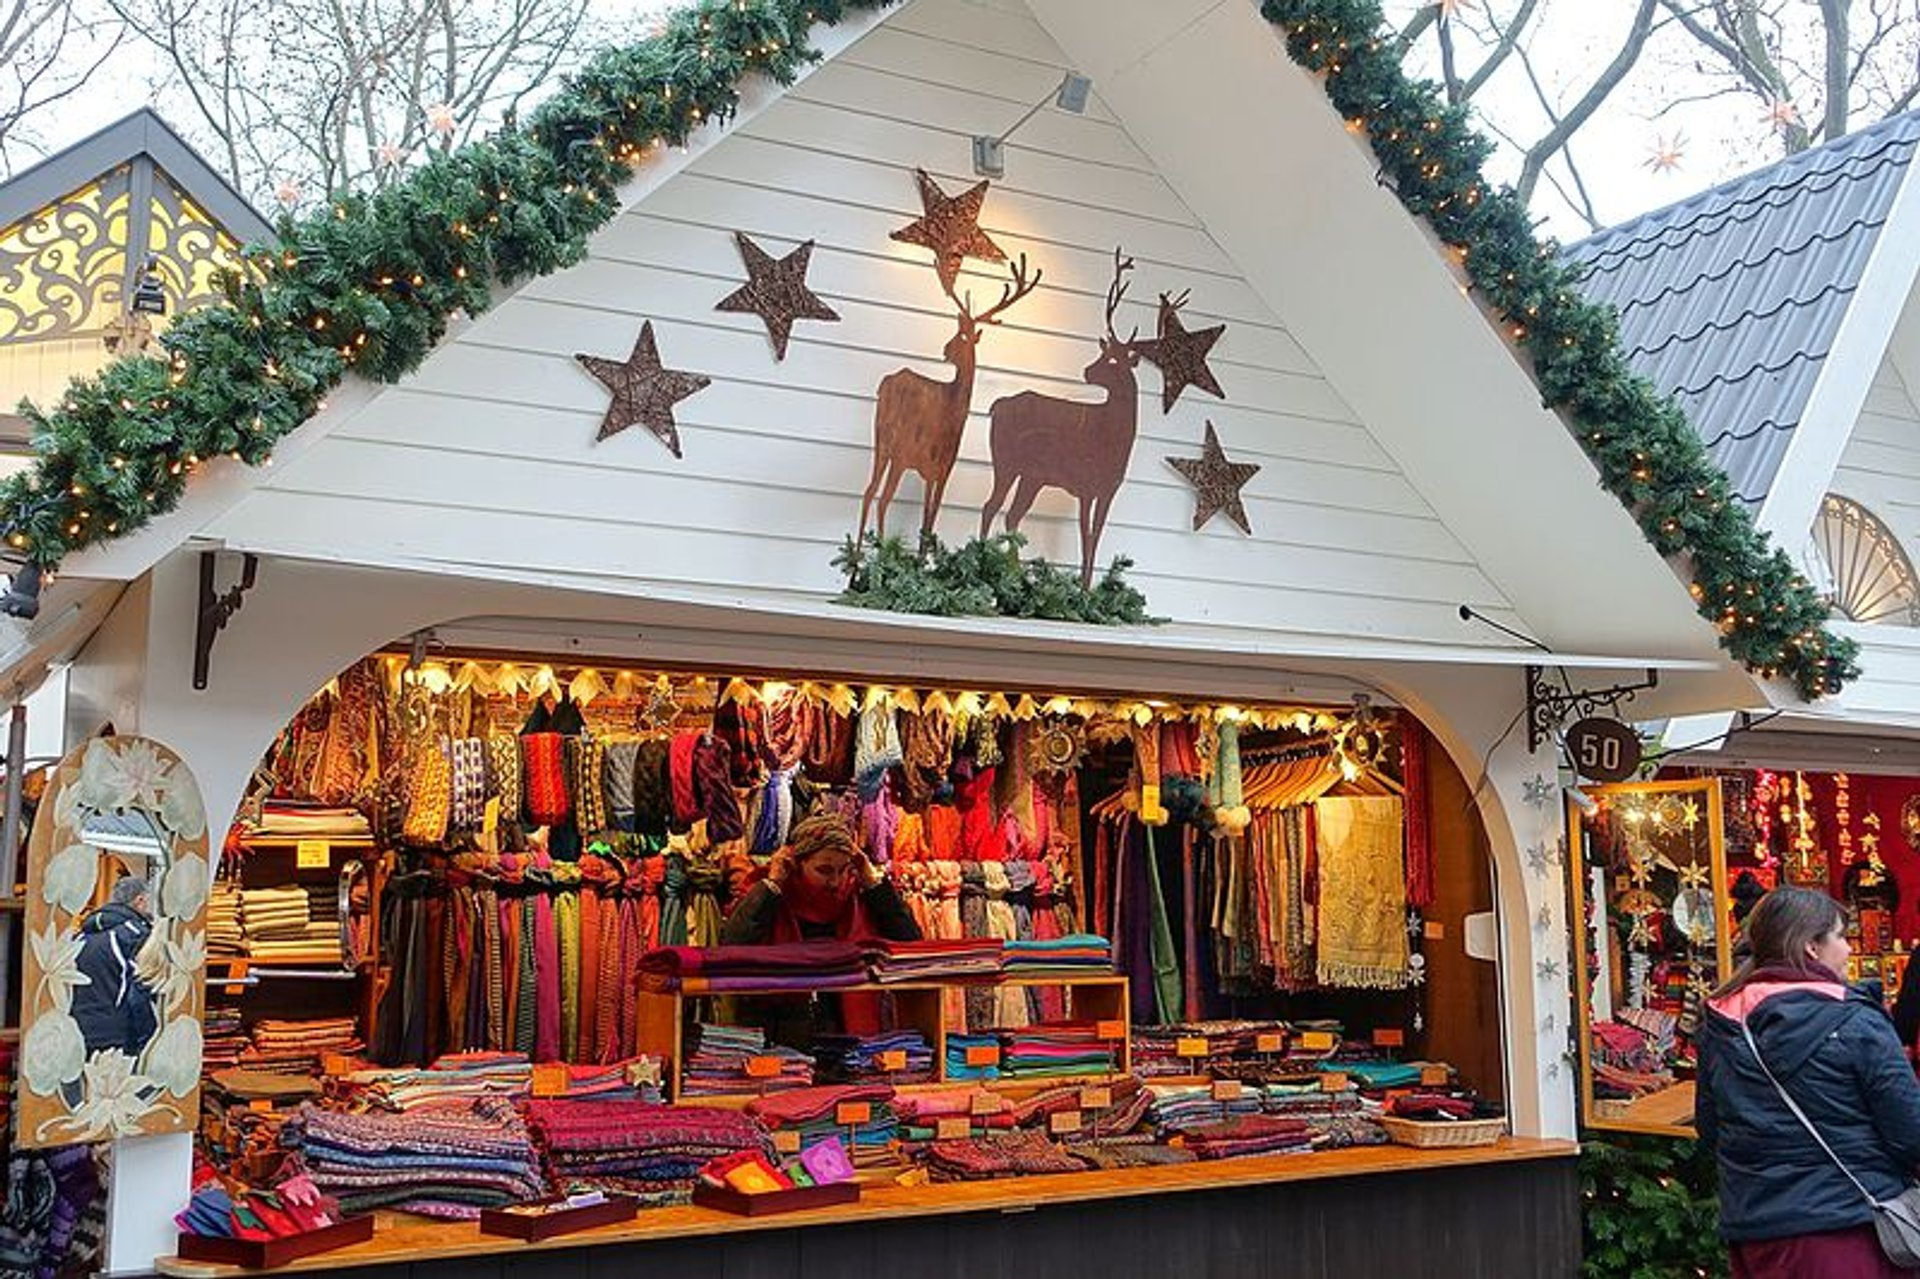 Cologne Christmas Market 2020